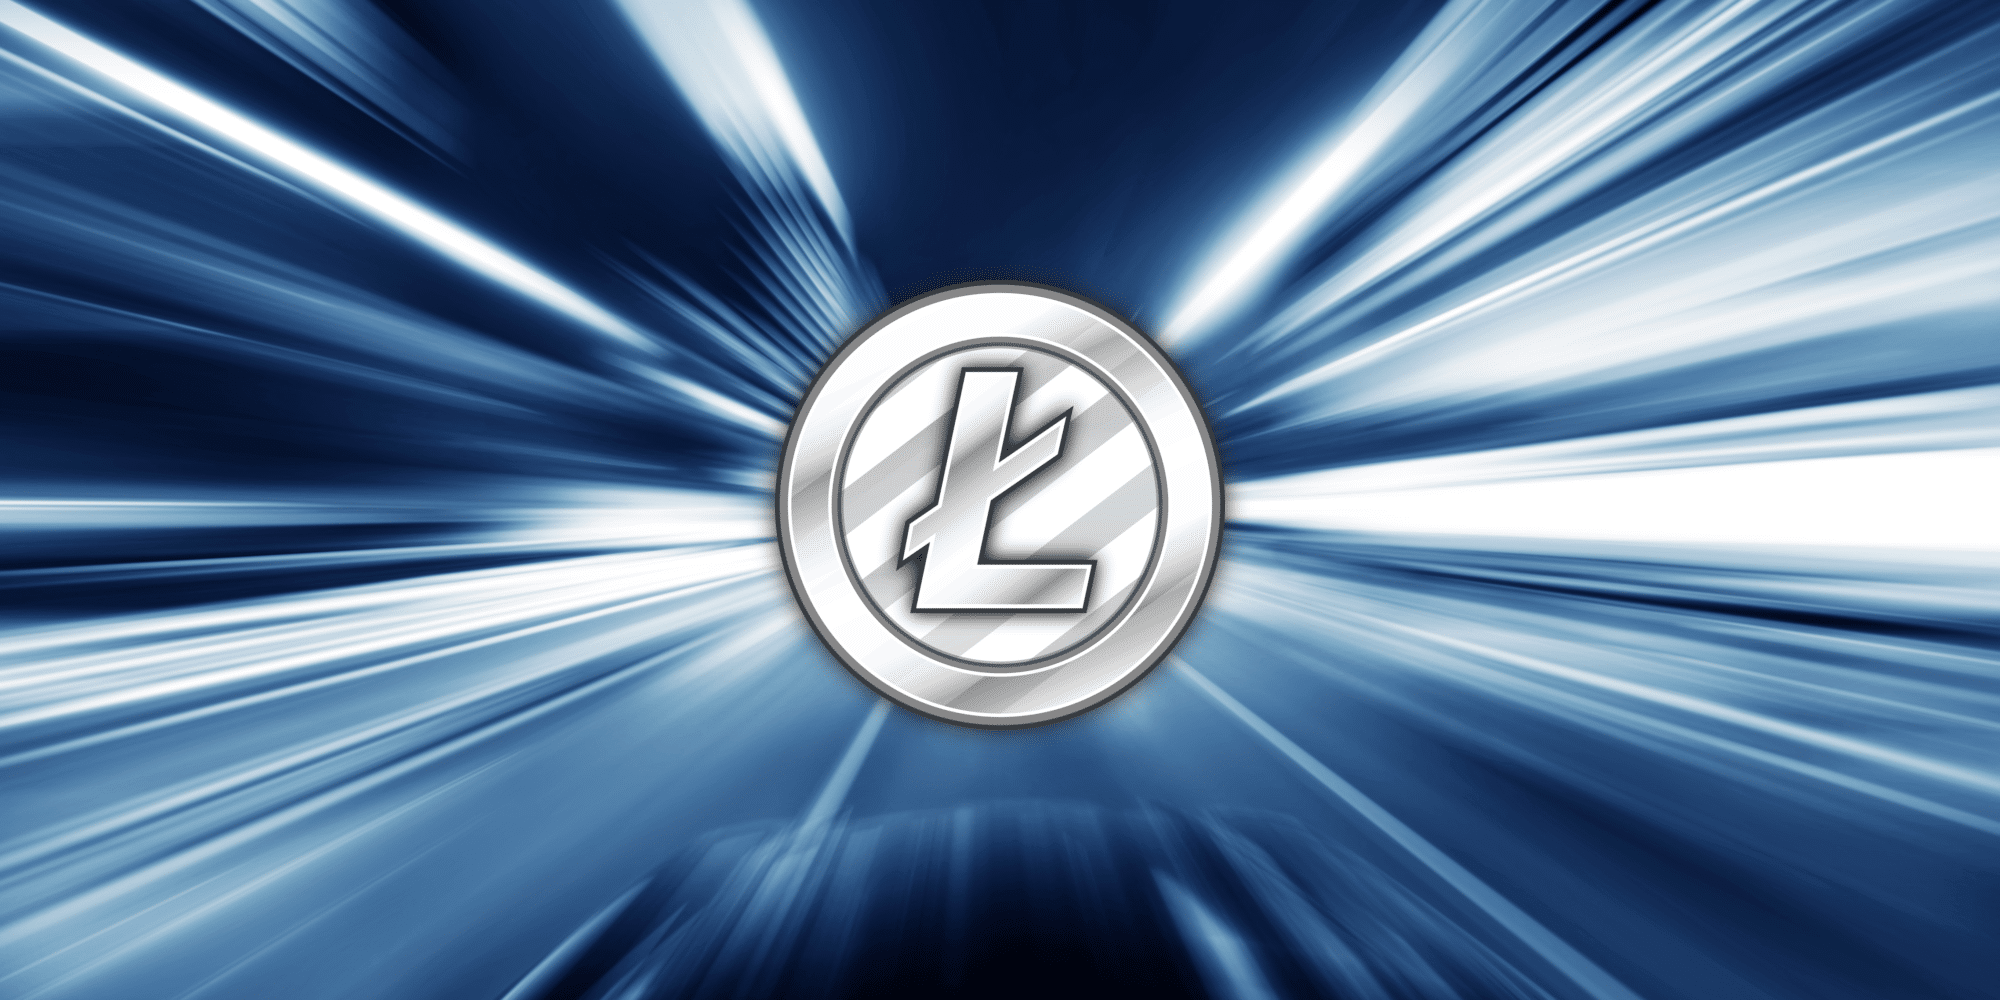 Litecoin FaucetPay